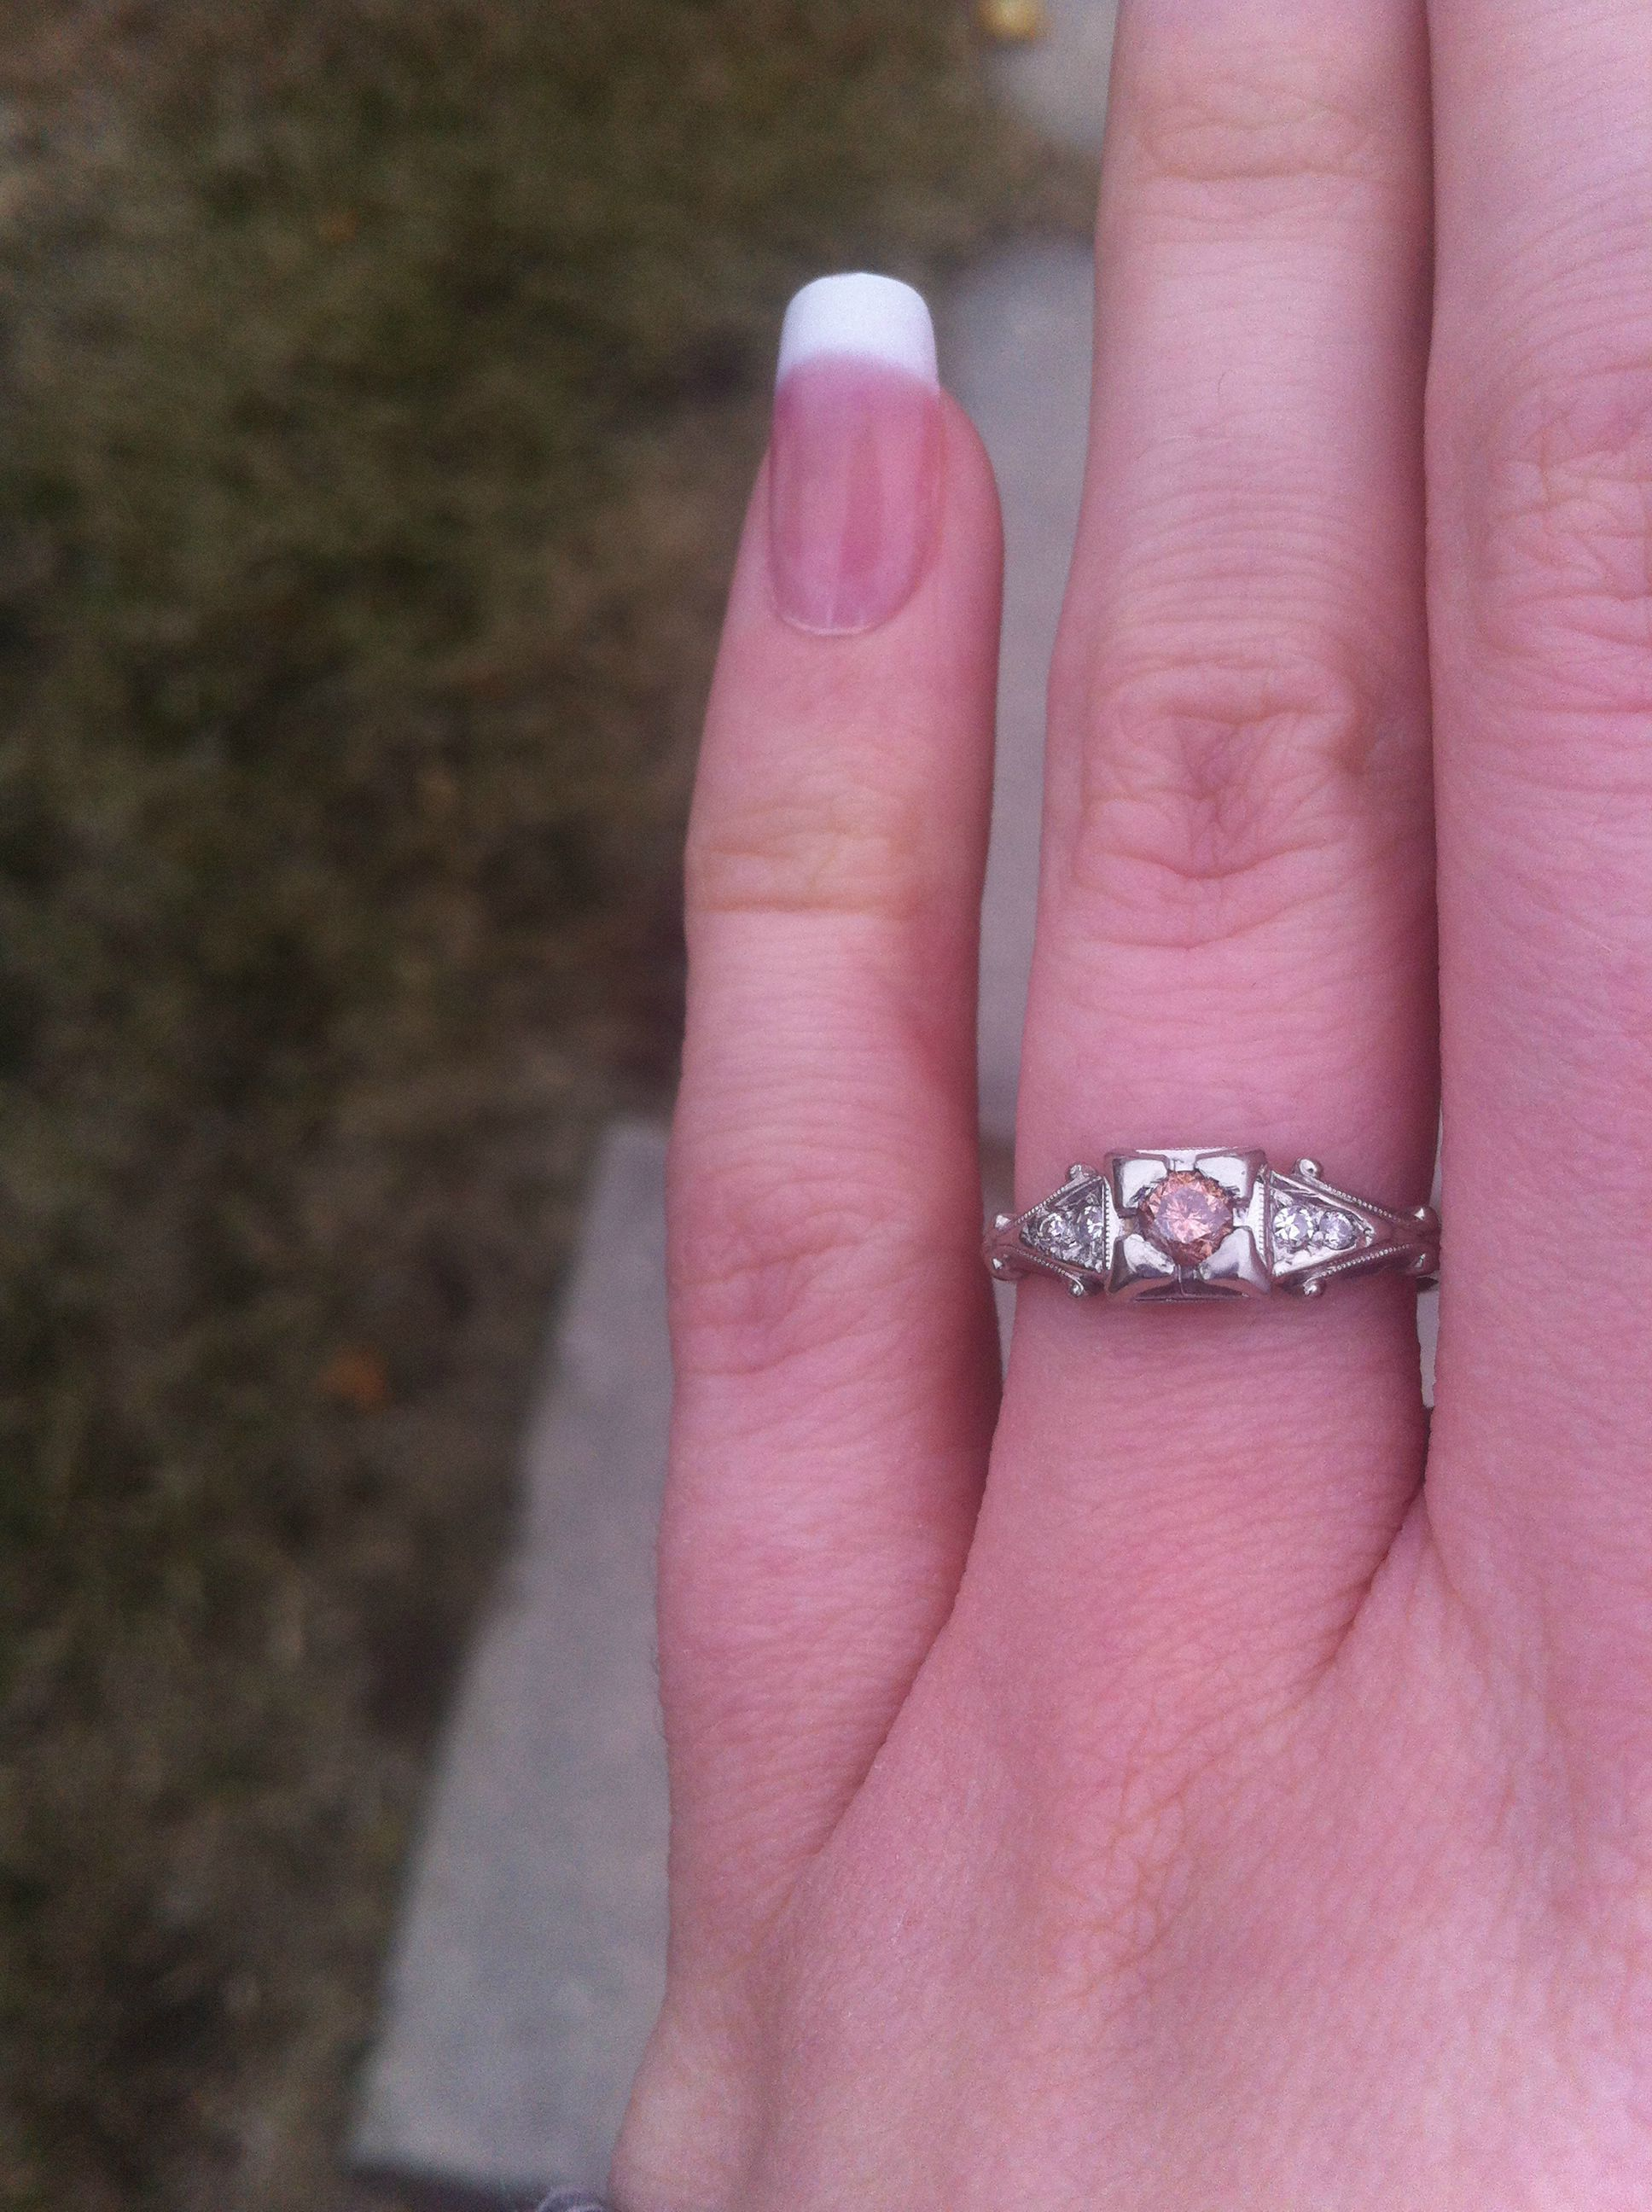 Show Me Your Vintage/Antique Engagement Rings! - Weddingbee | Page 4 ...